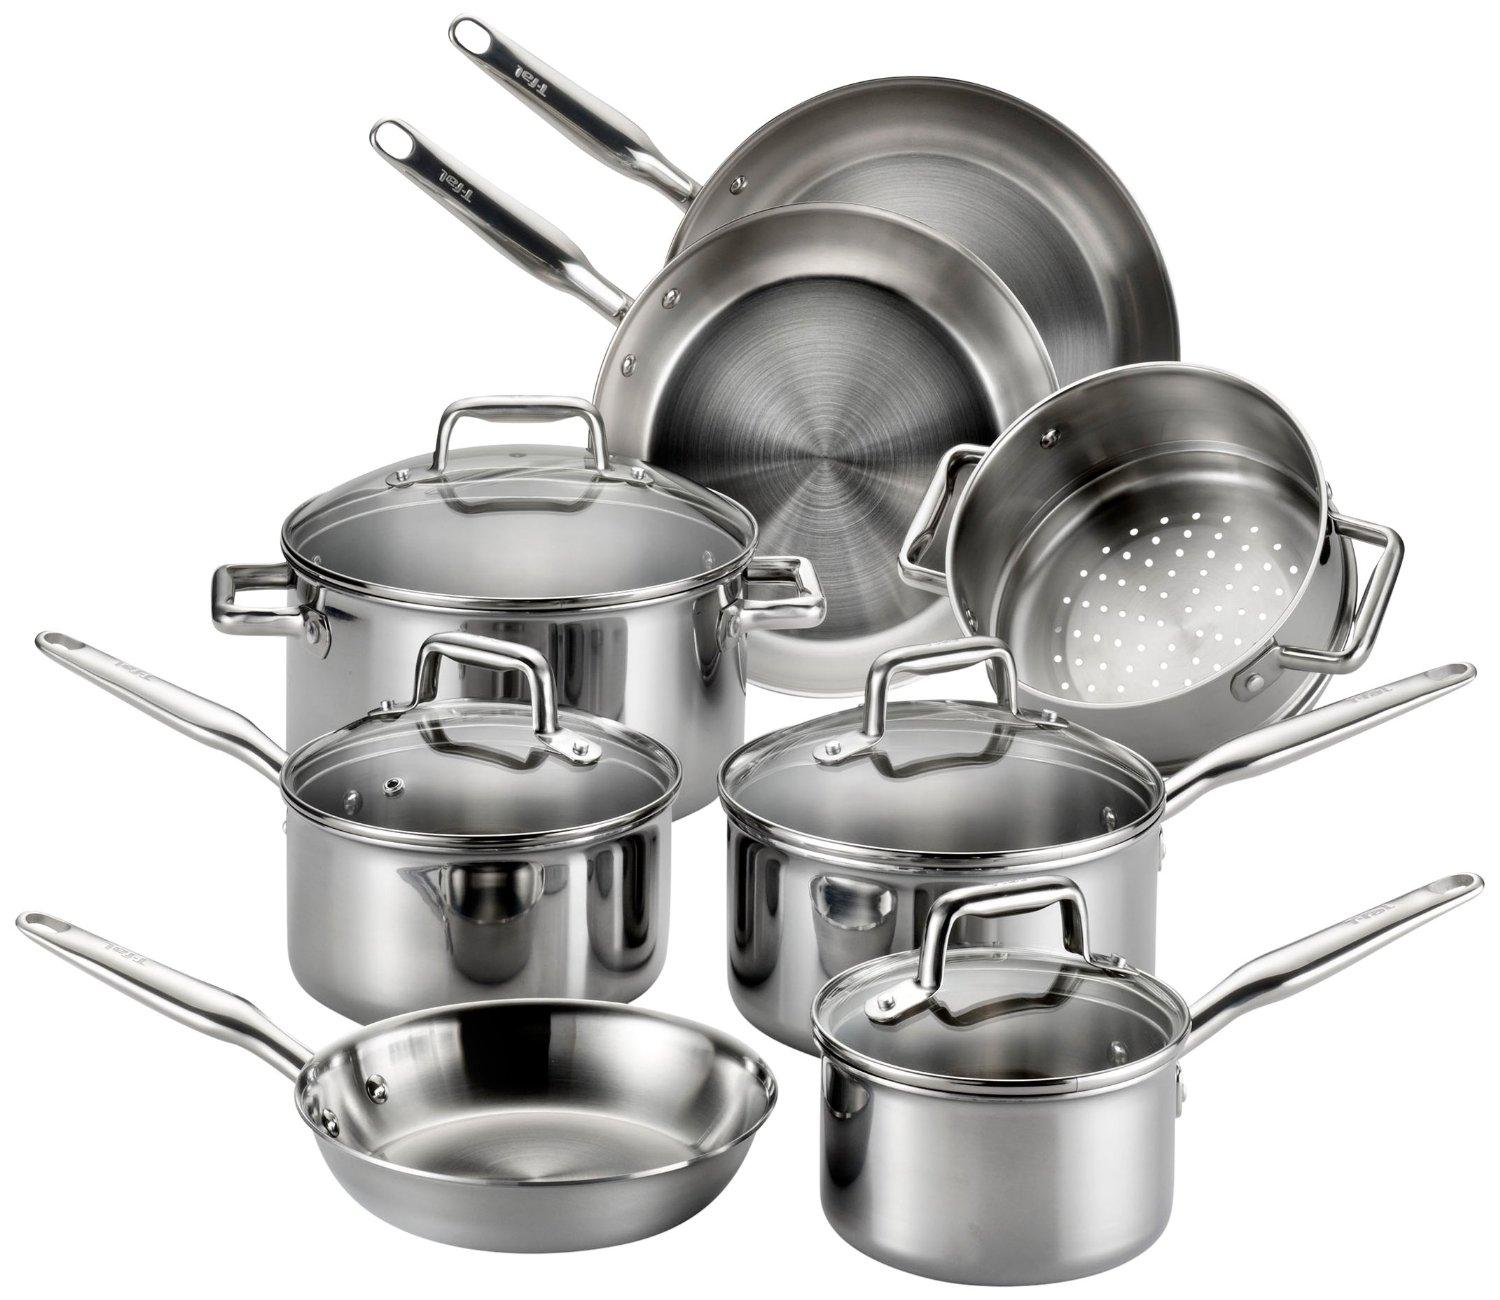 T-fal E469SC Tri-Ply Stainless Steel Multiple Layer Cookware Set, 12-Piece